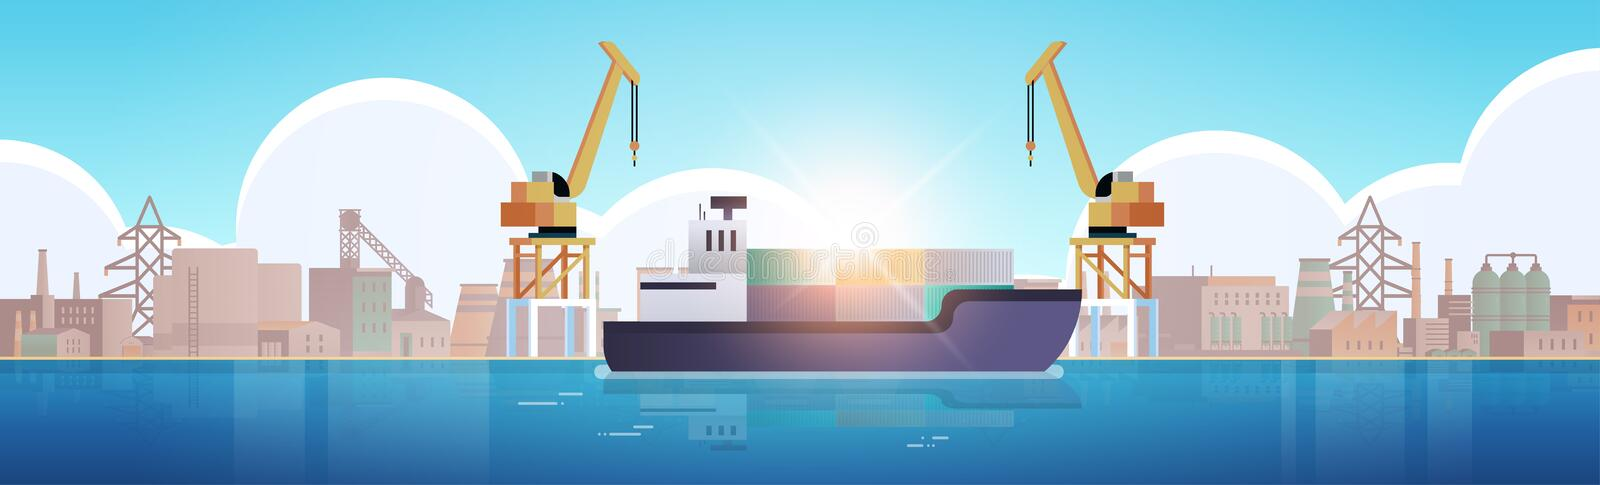 Cranes in port loading containers on ship cargo industrial seaport sea transportation logistic maritime shipping concept royalty free illustration